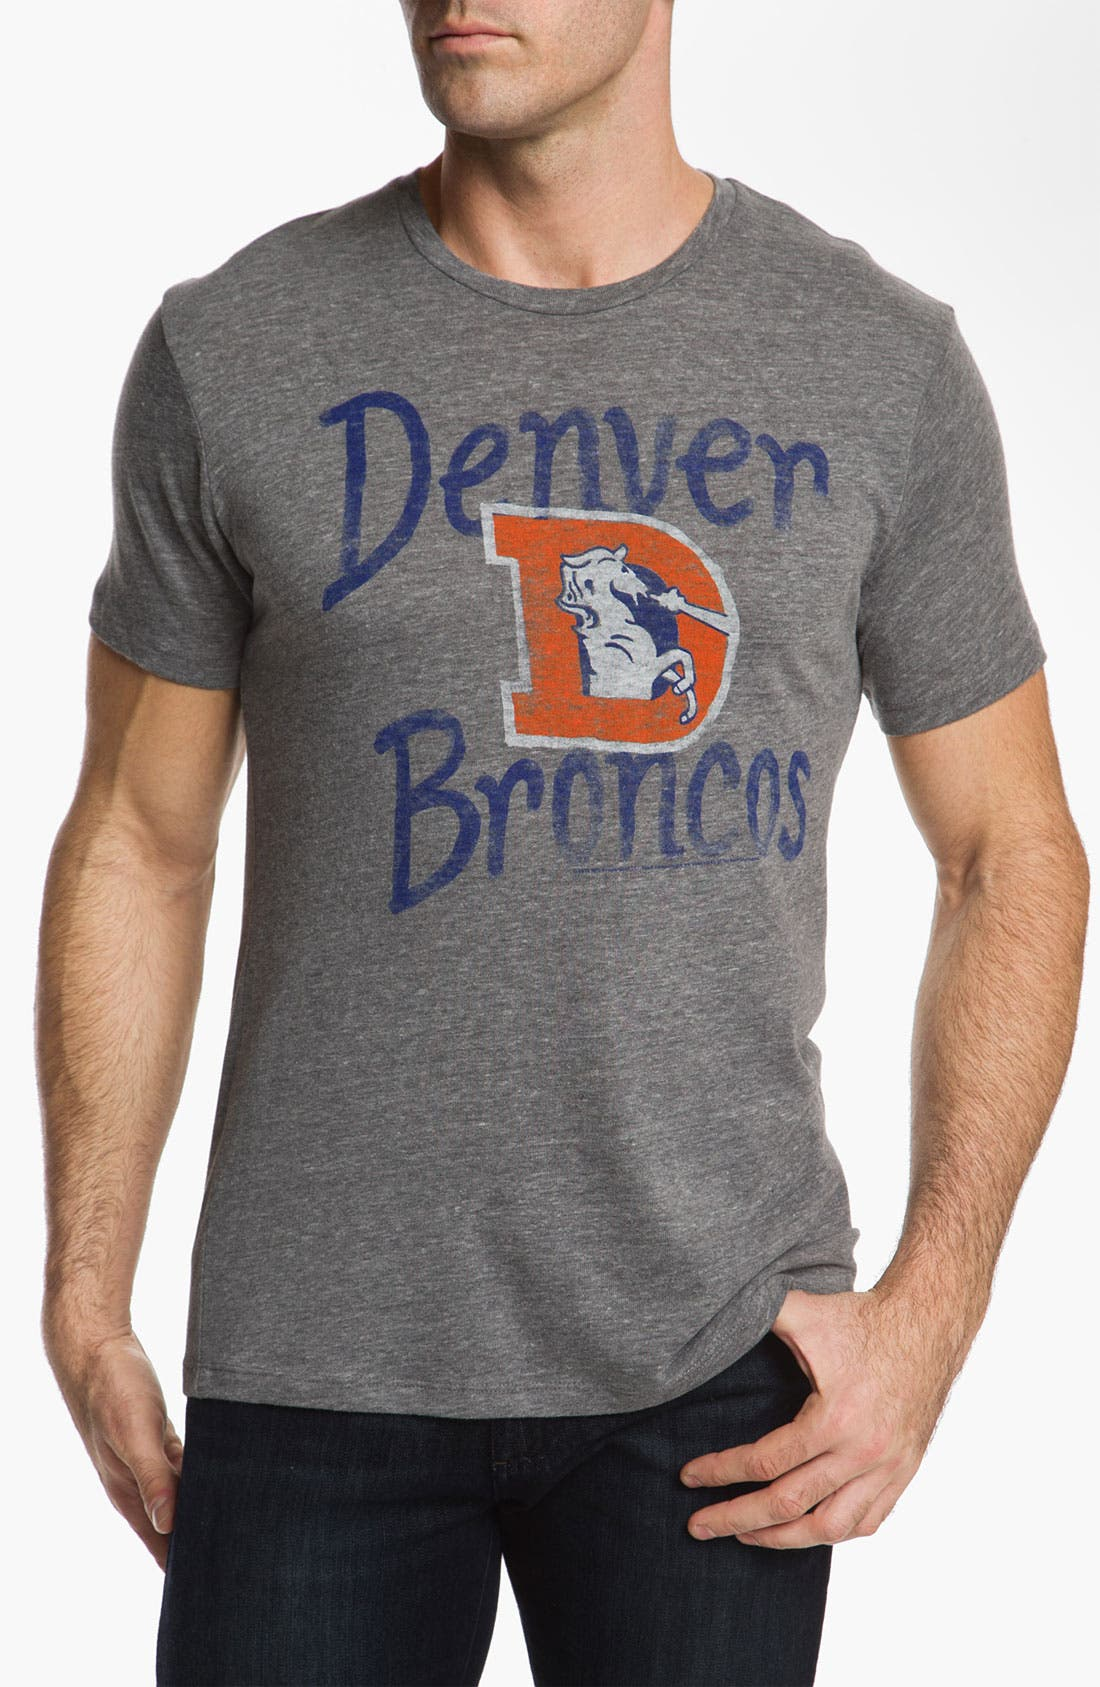 Main Image - Junk Food 'Denver Broncos' T-Shirt